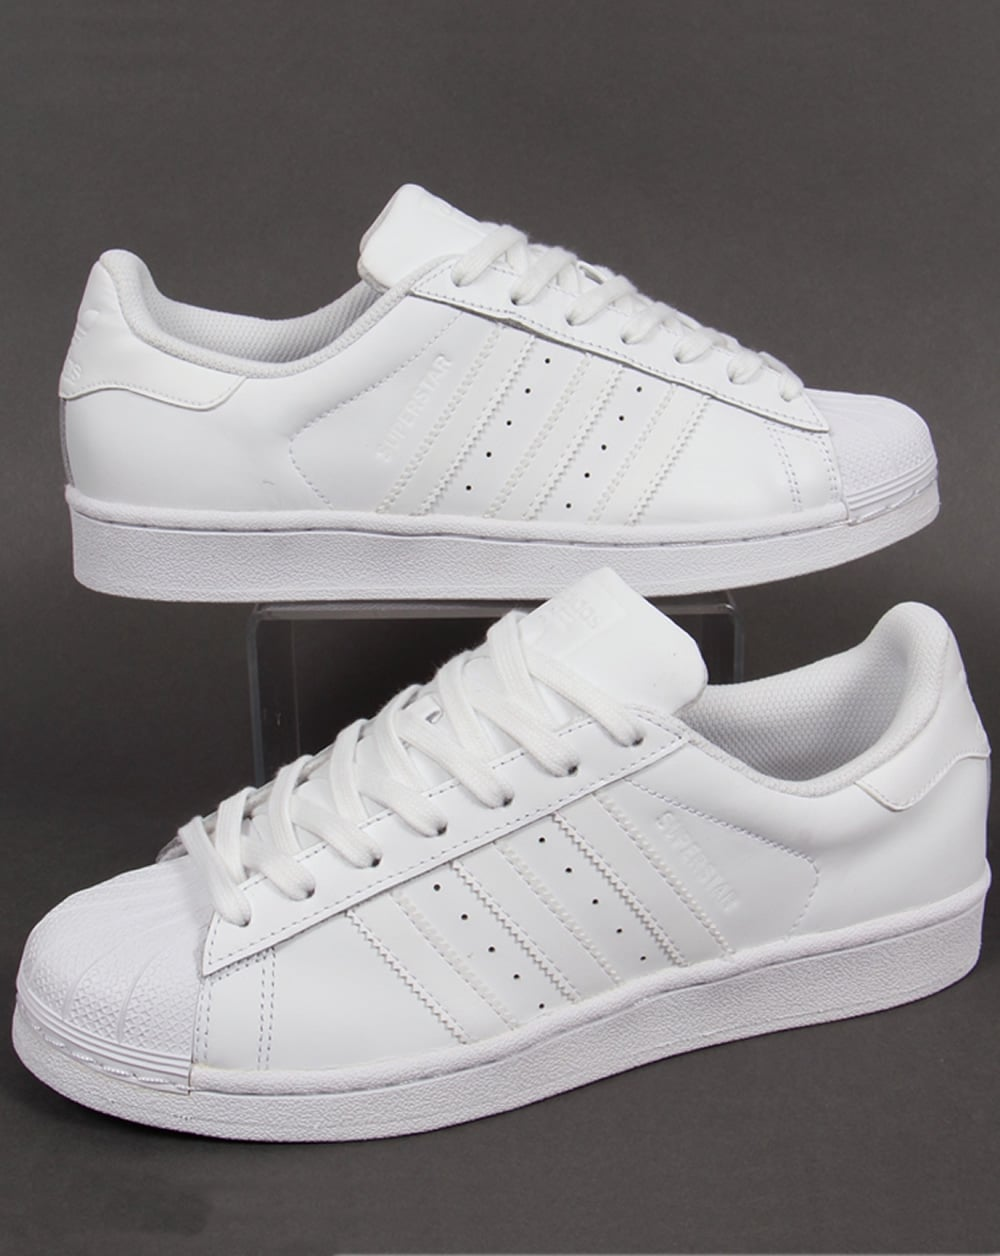 Adidas Superstar Trainers Triple White Shoes Basketball Mens